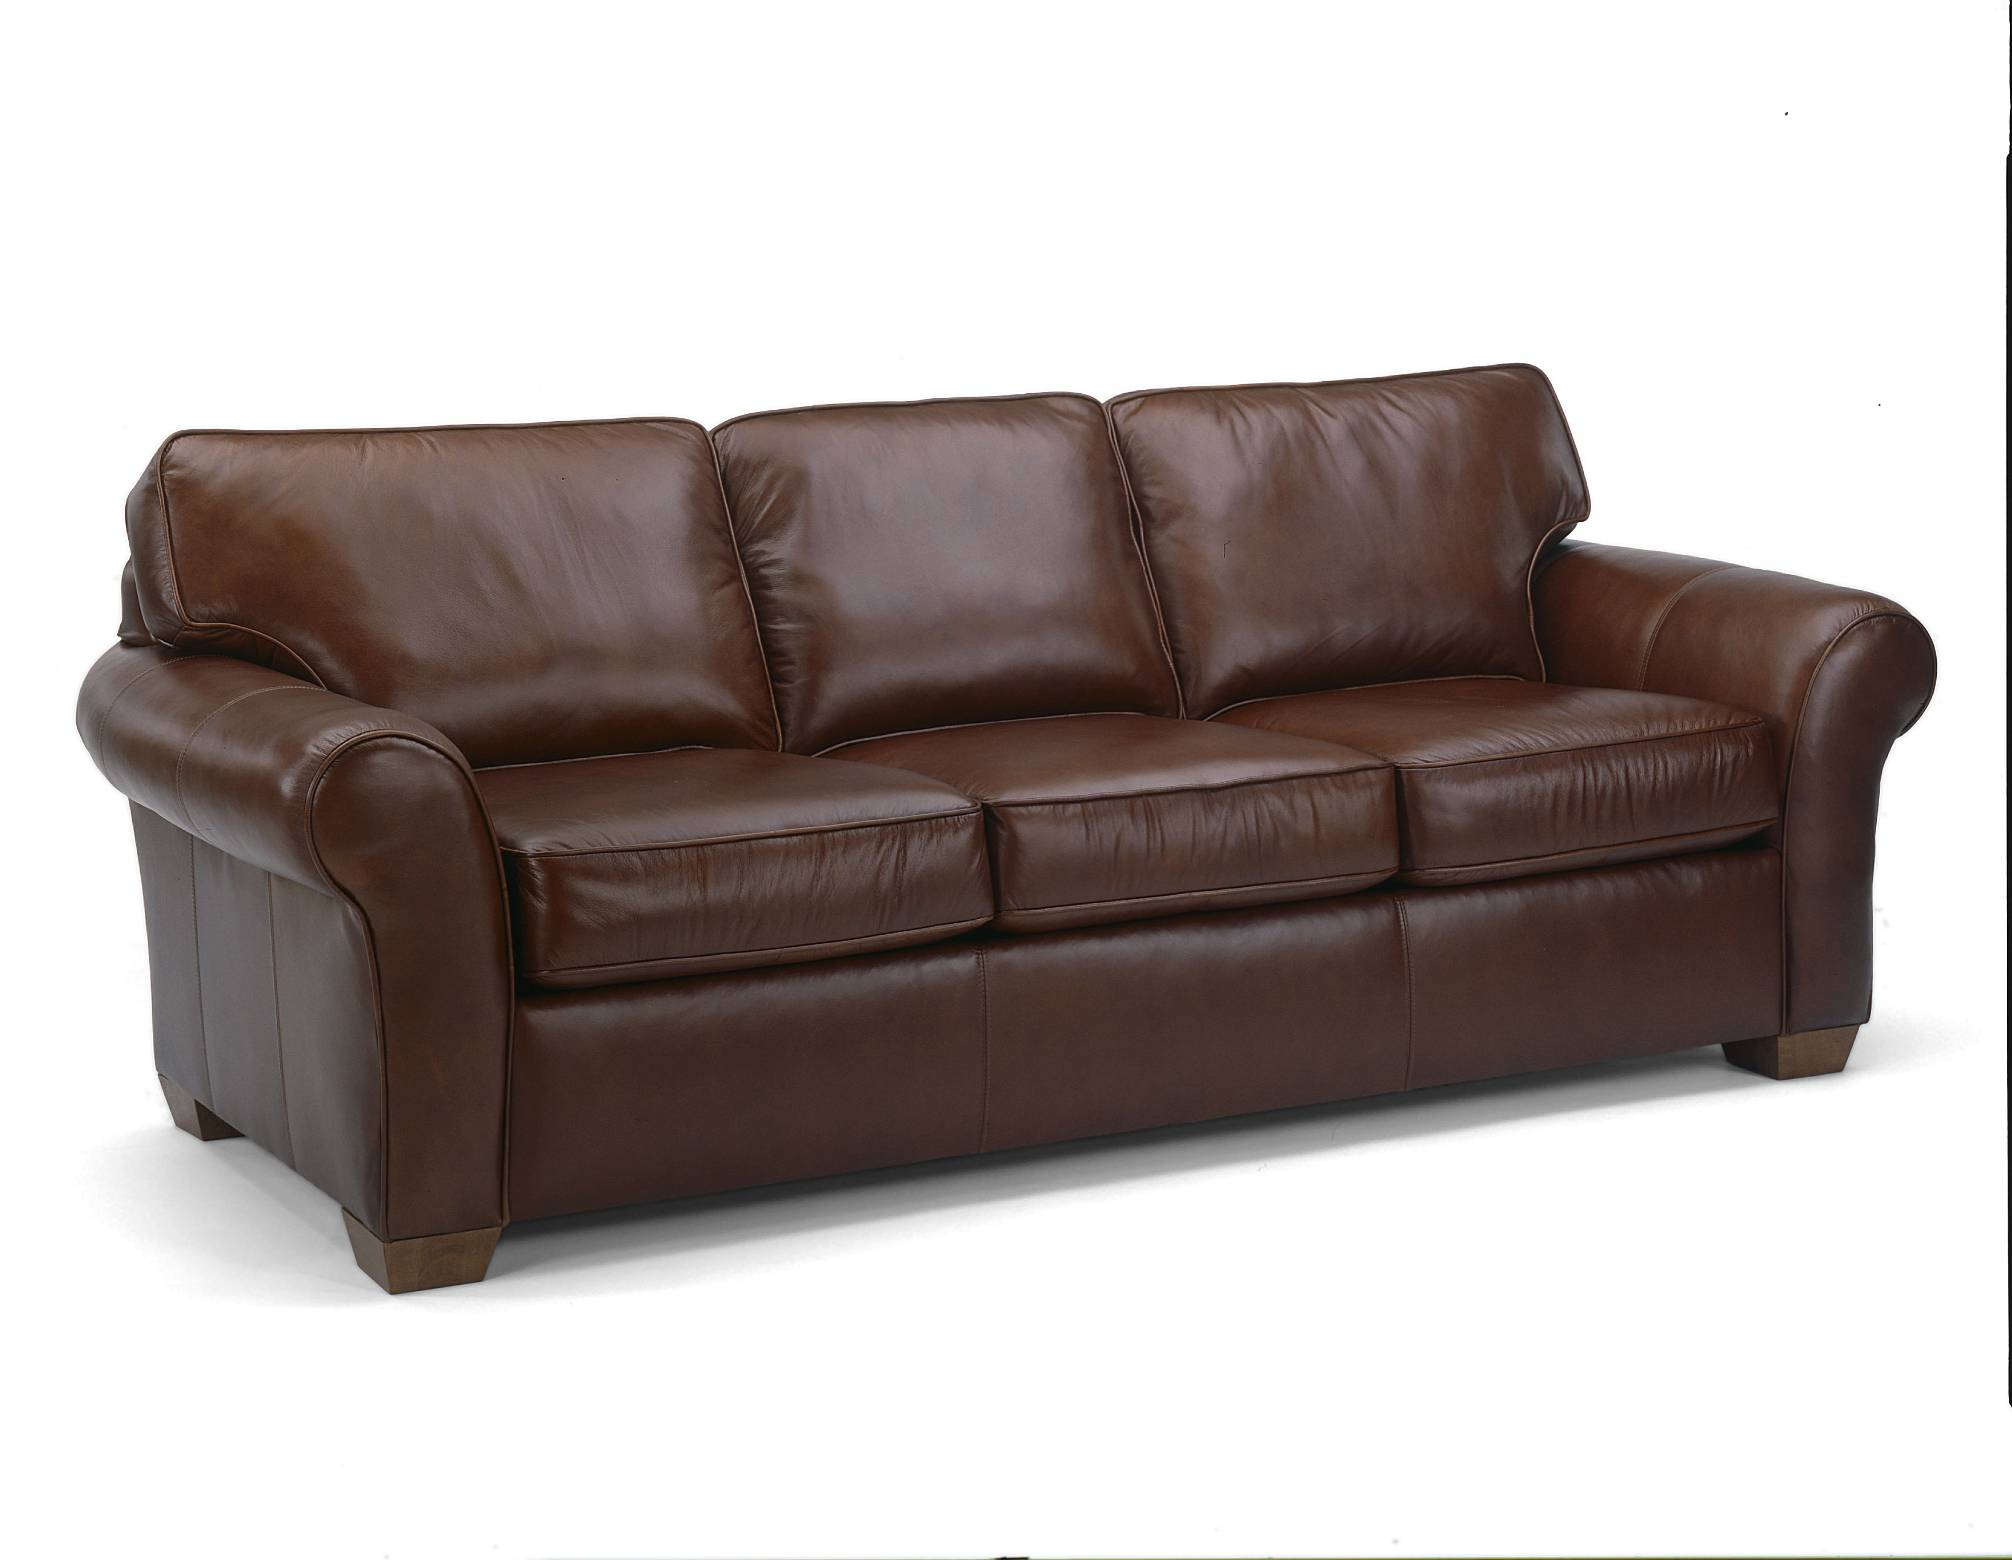 Flexsteel Archives Jasens Fine Furniture Since - Flexsteel sofa leather